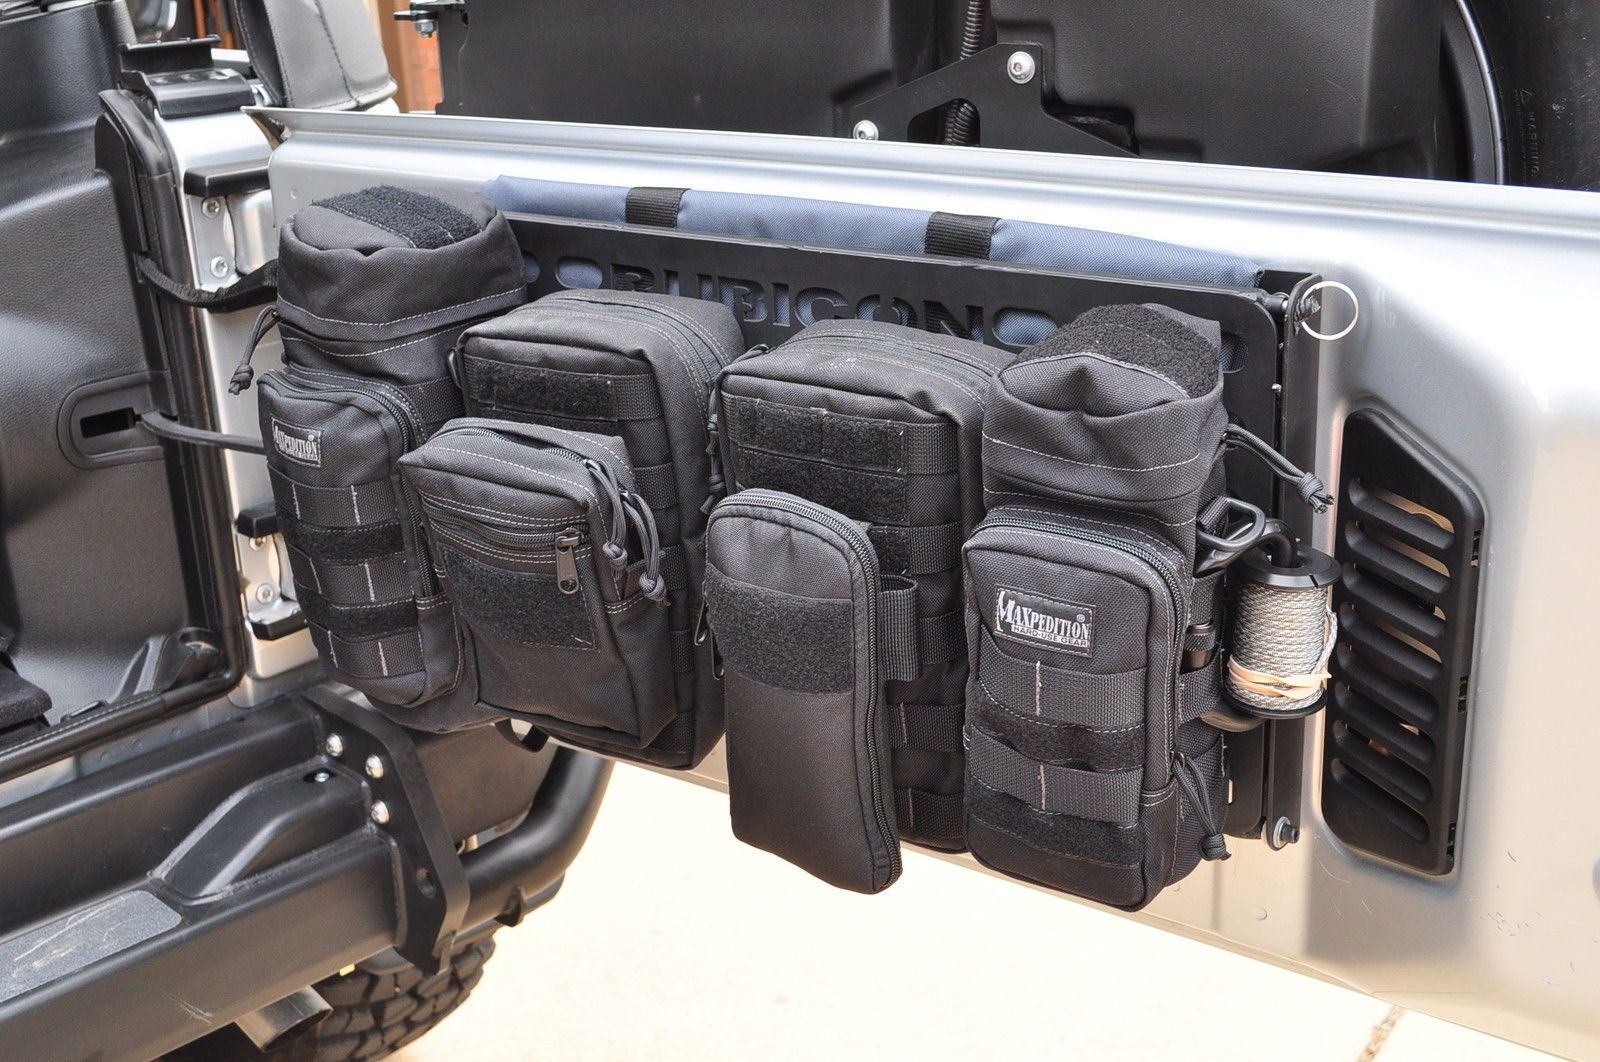 So A Guy In High Point Makes And Sells These Molle Racks